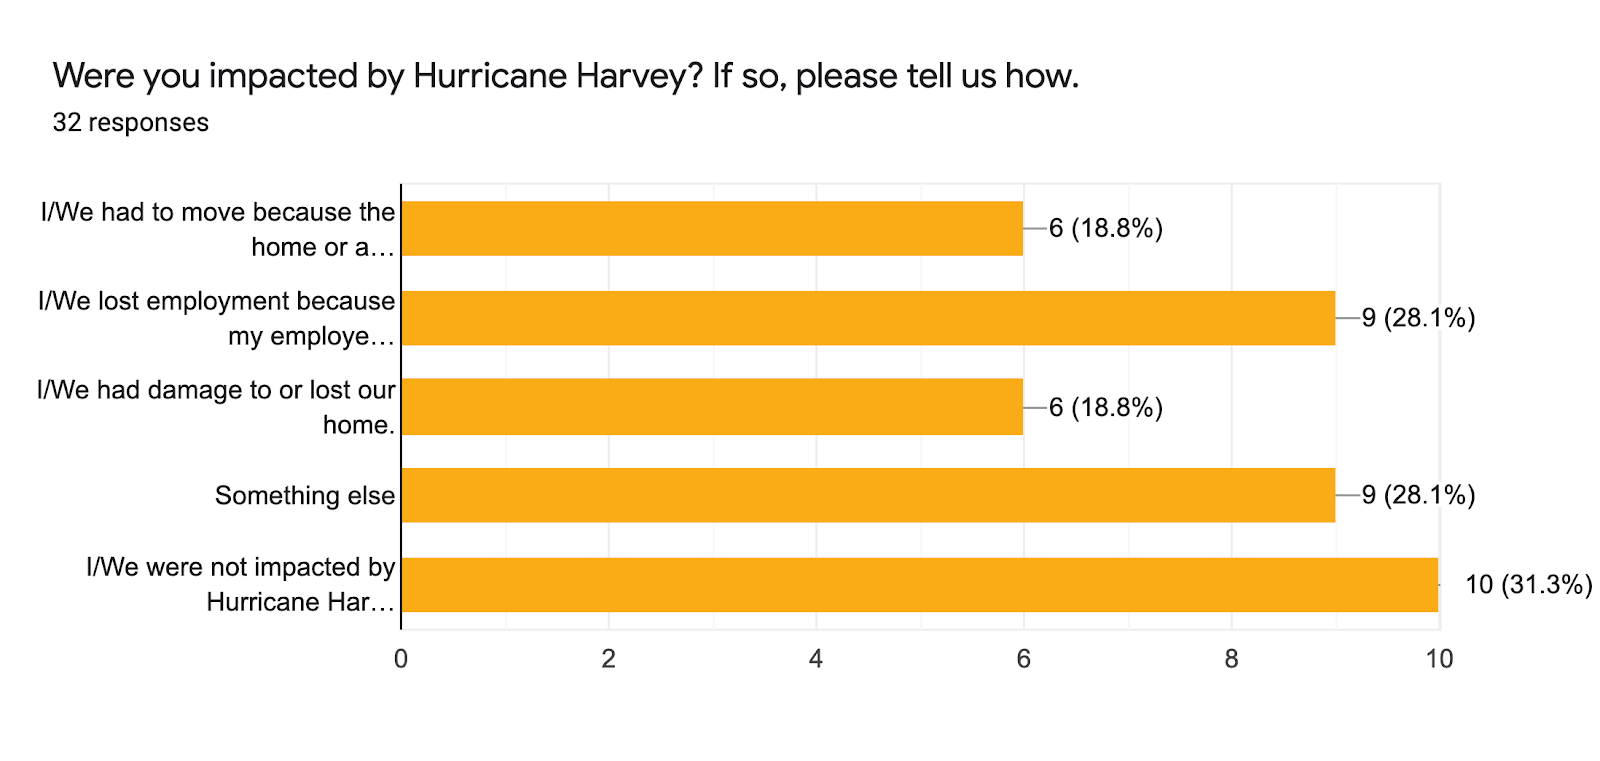 Forms response chart. Question title: Were you impacted by Hurricane Harvey? If so, please tell us how.. Number of responses: 32 responses.